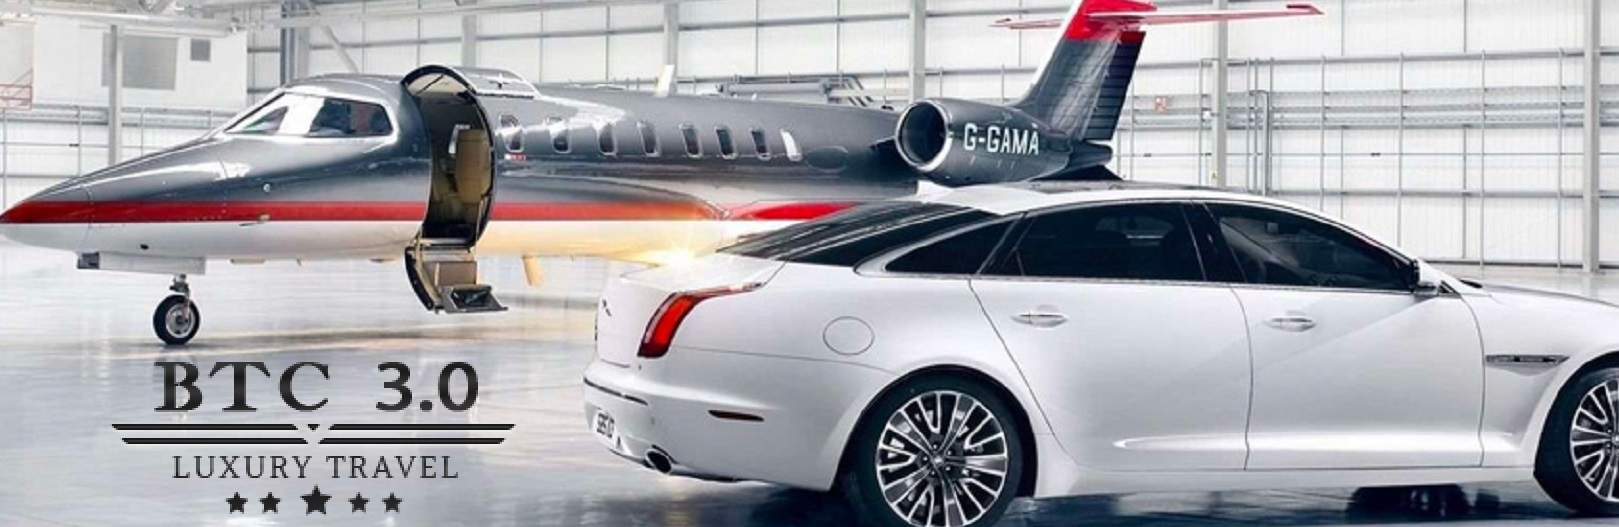 BTC Luxury Travel - Jets, Yachts, Cars, Services..